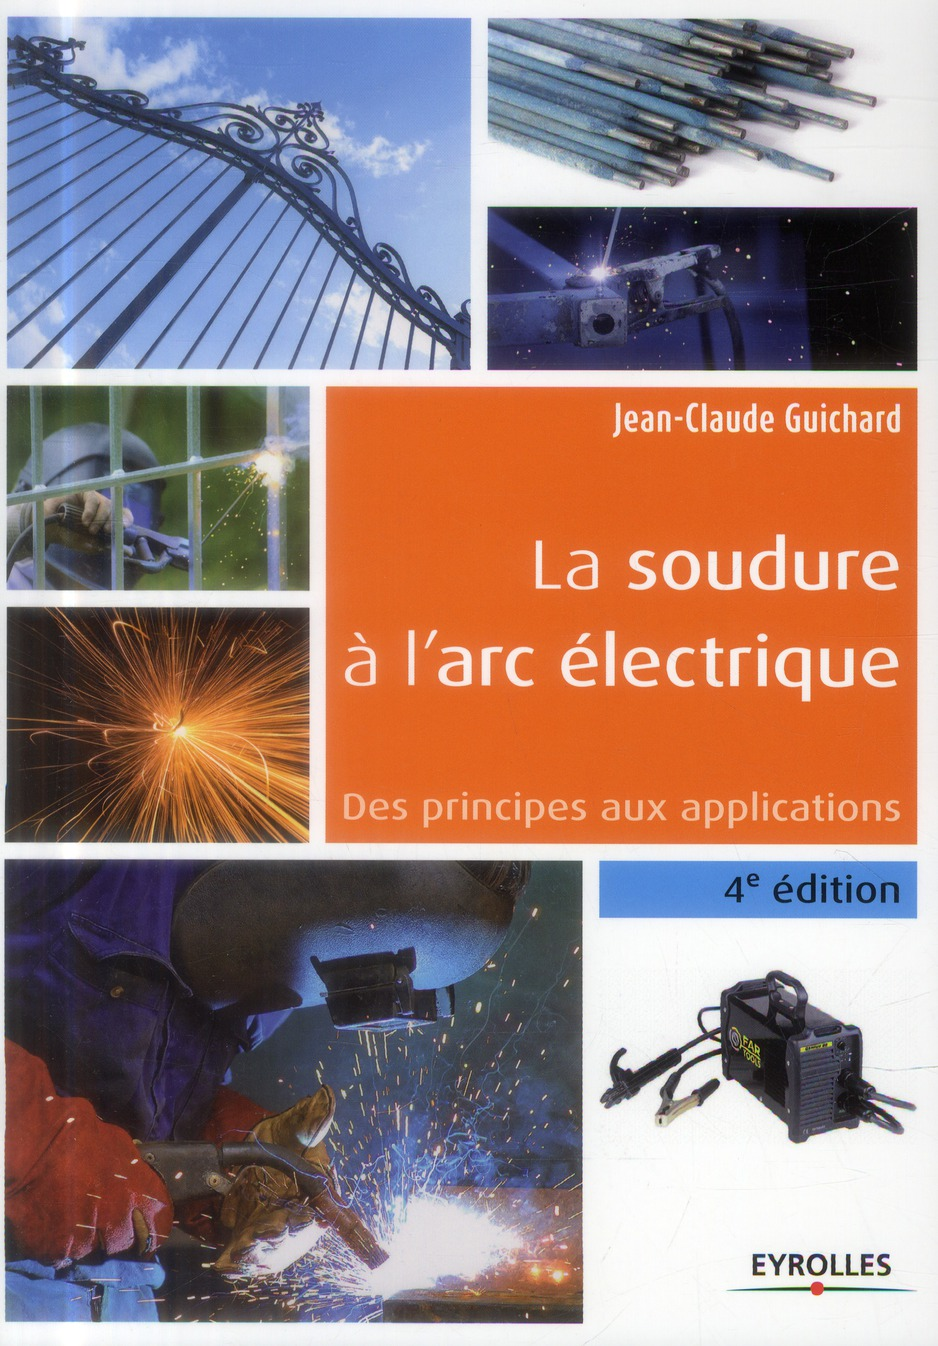 LA SOUDURE A L'ARC ELECTRIQUE - DES PRINCIPES AUX APPLICATIONS GUICHARD JC Eyrolles